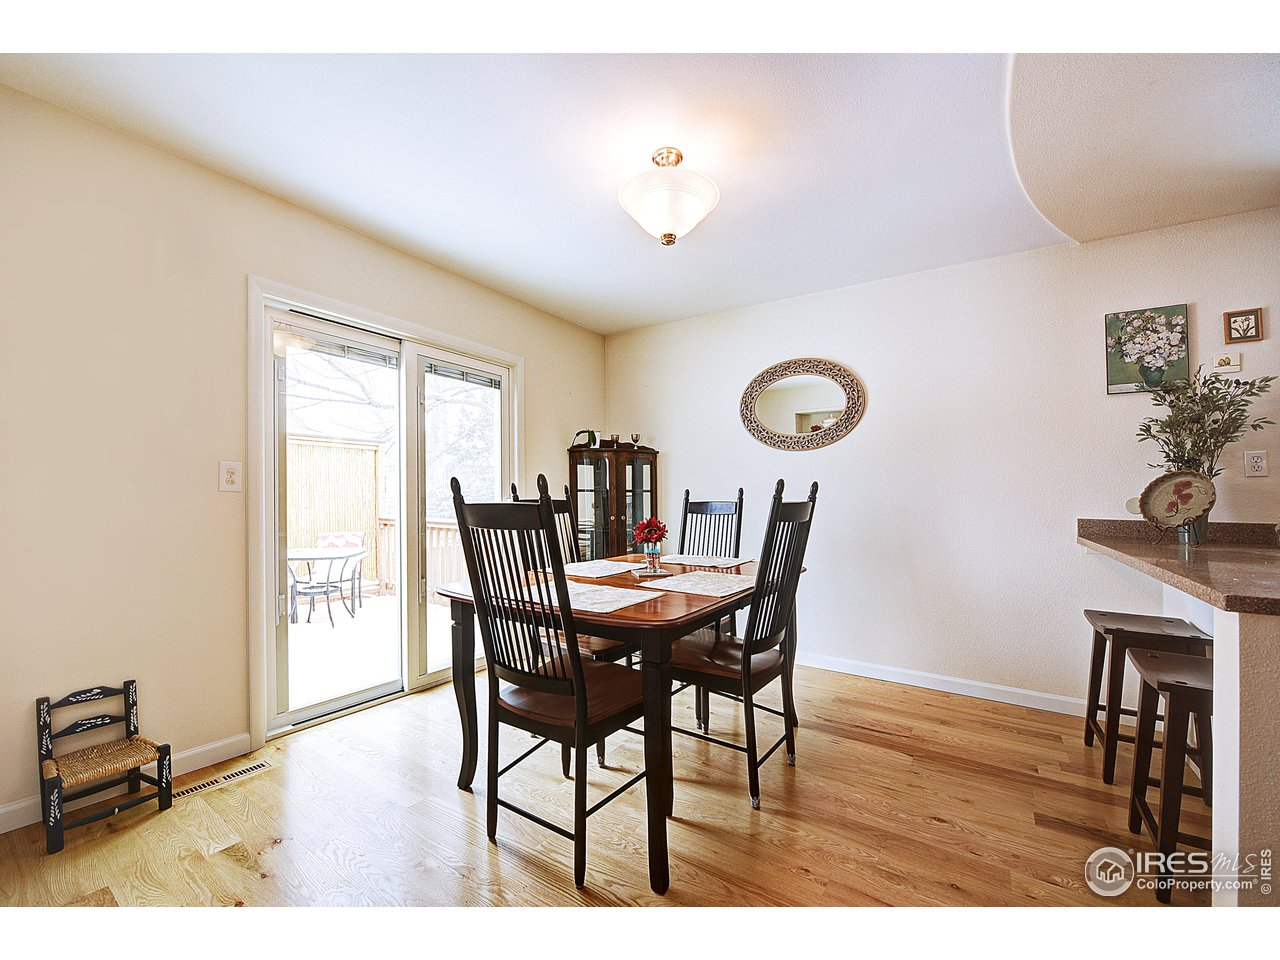 Dining room with sliding door to back deck